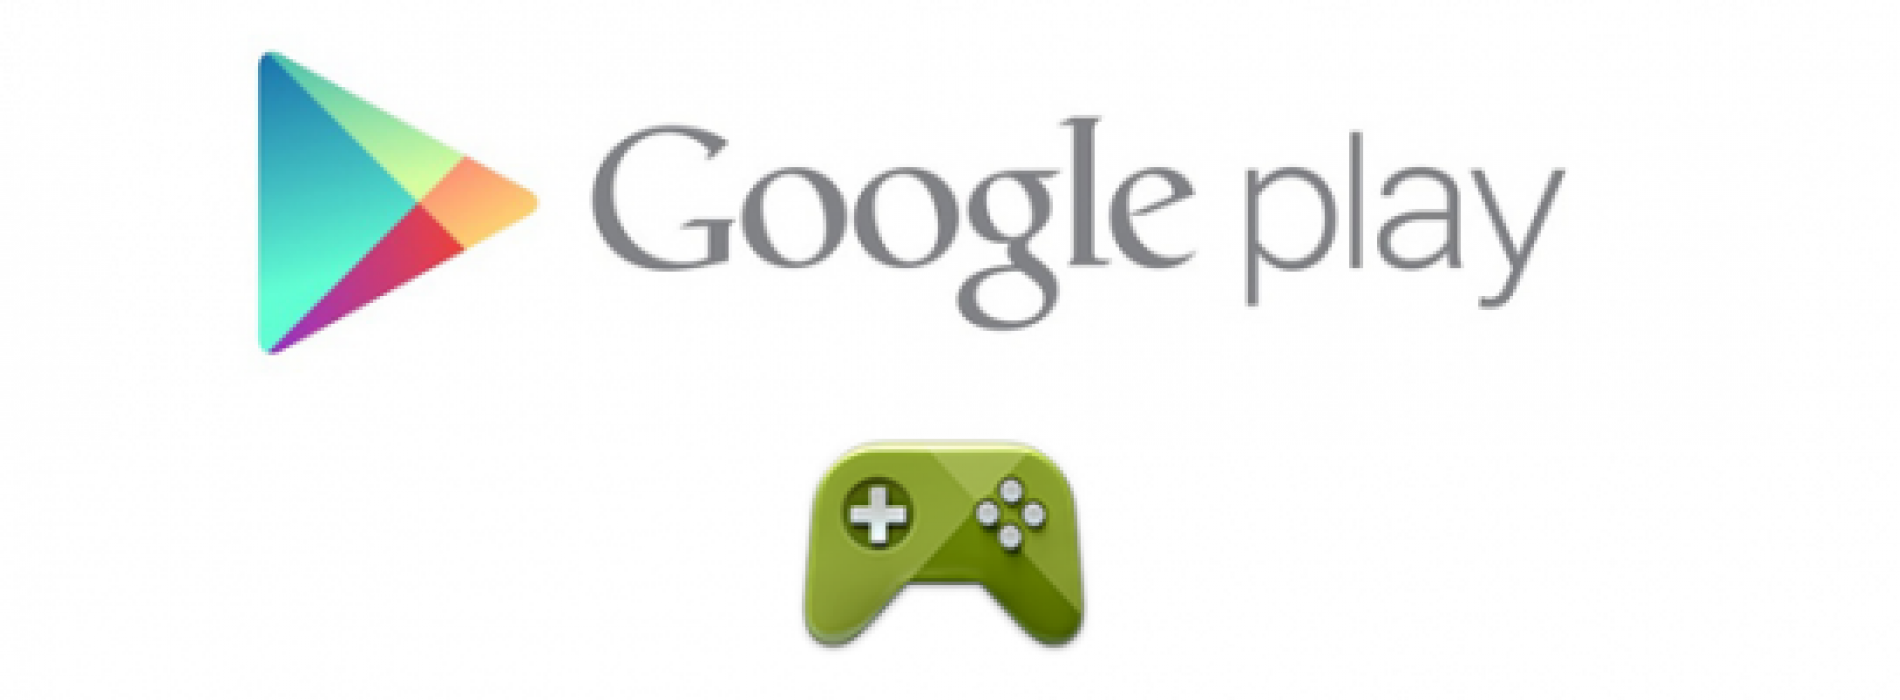 Google Play Games 2.0 rolling out now carrying features and improvements [Download]